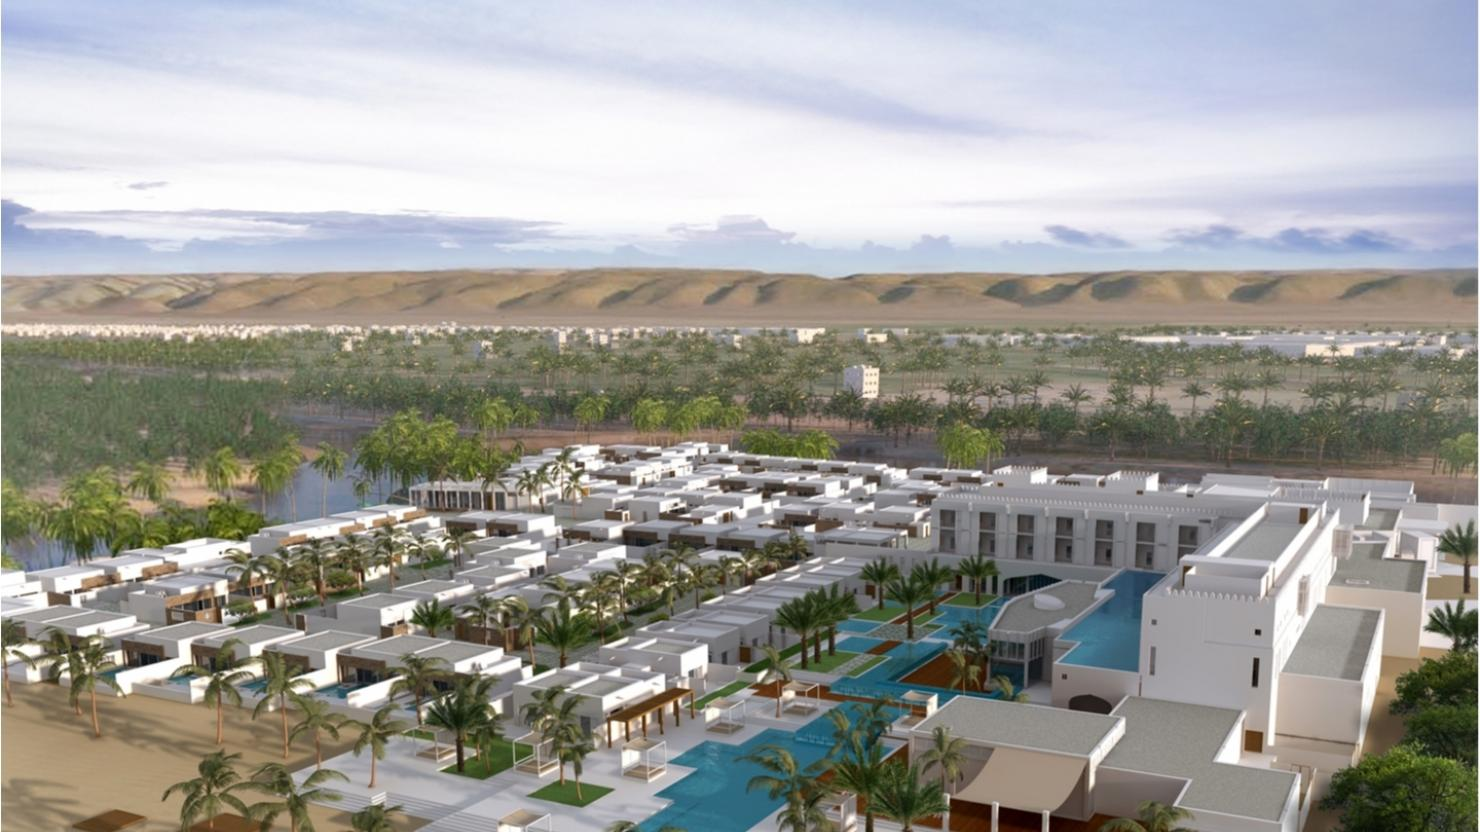 South oman luxury resort to open in summer omangb news for Hotel luxury oman